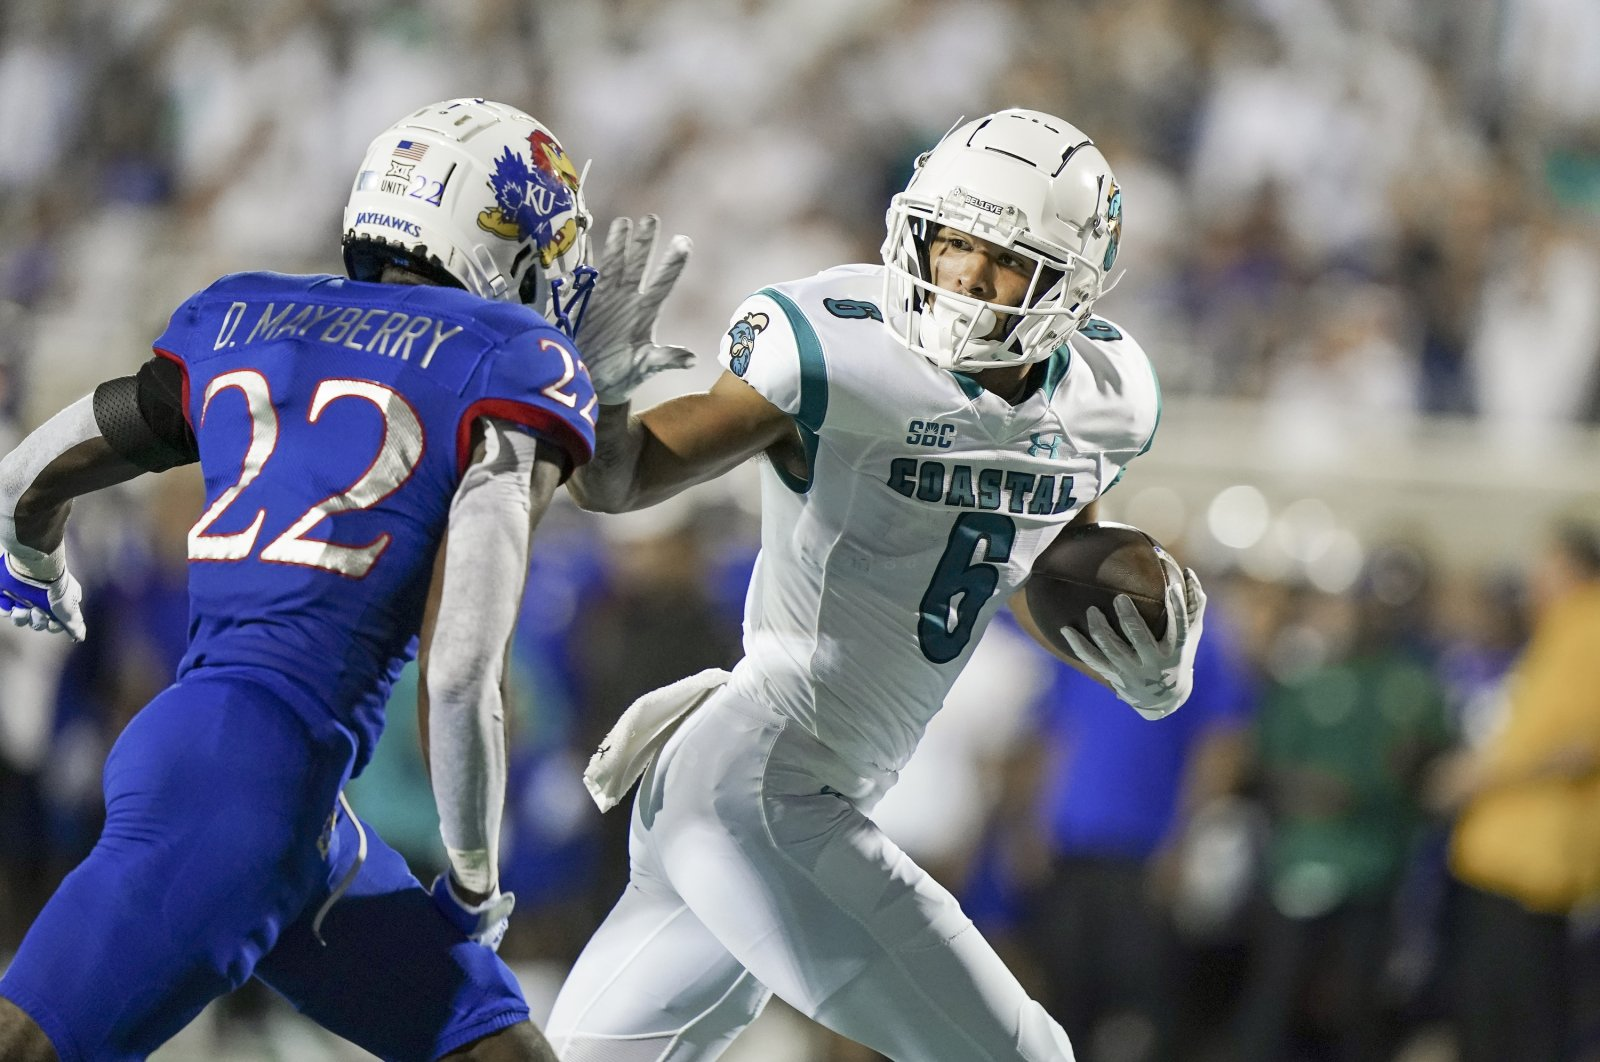 Coastal Carolina Chanticleers wide receiver Jaivon Heiligh (6) moves the ball against Kansas Jayhawks cornerback Duece Mayberry (22) during action in the first quarter at Brooks Stadium, Conway, South Carolina, U.S., Sept. 10, 2021. (USA TODAY Sports via Reuters)